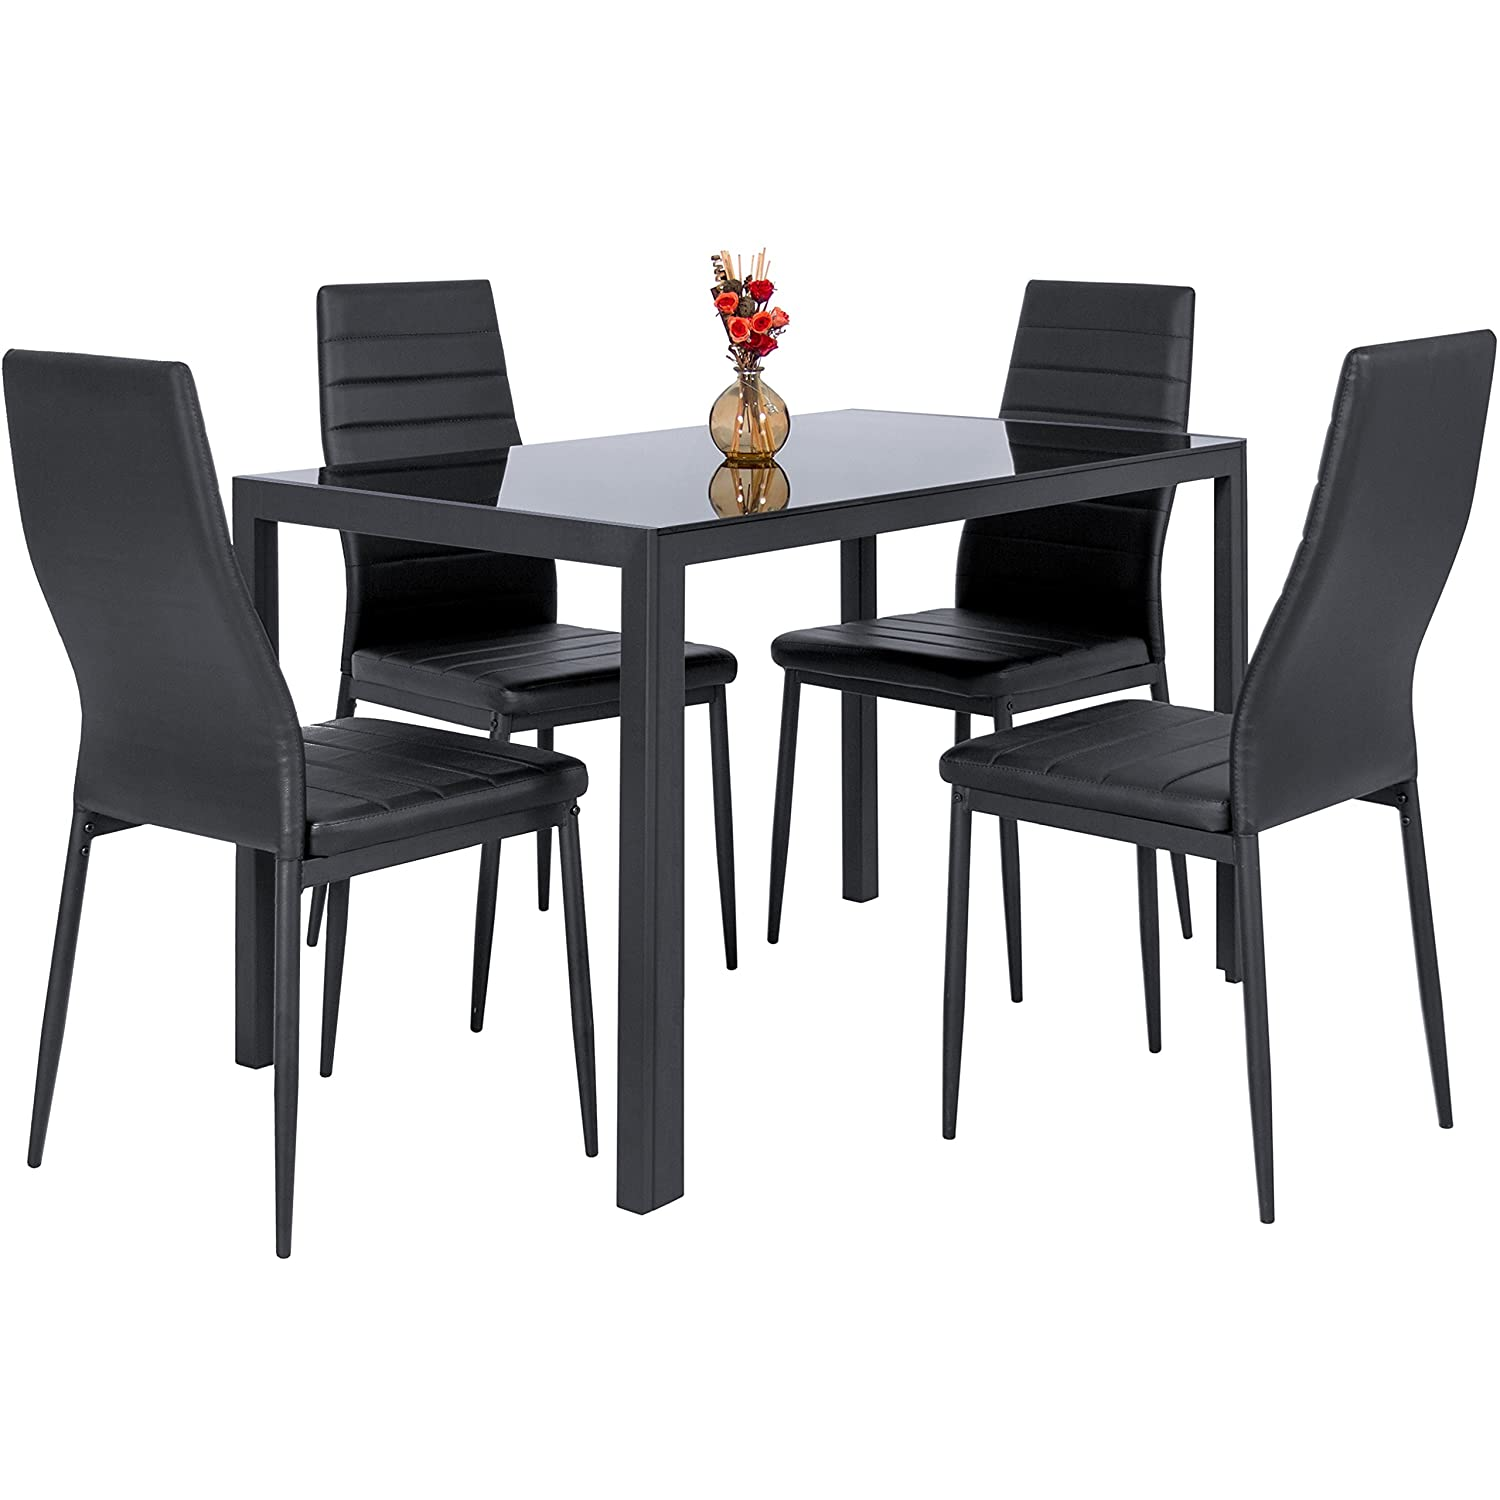 Best Choice Products 5 Piece Kitchen Dining Table Set W  Glass Top And 4  Leather Chairs Dinette  Black. Table   Chair Sets   Amazon com